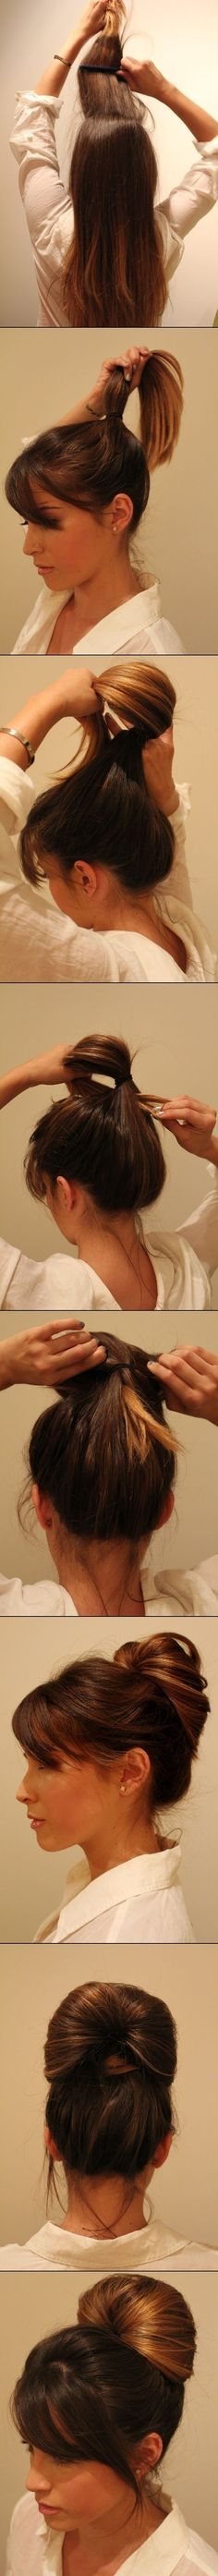 26 Quick Hairstyling Hacks